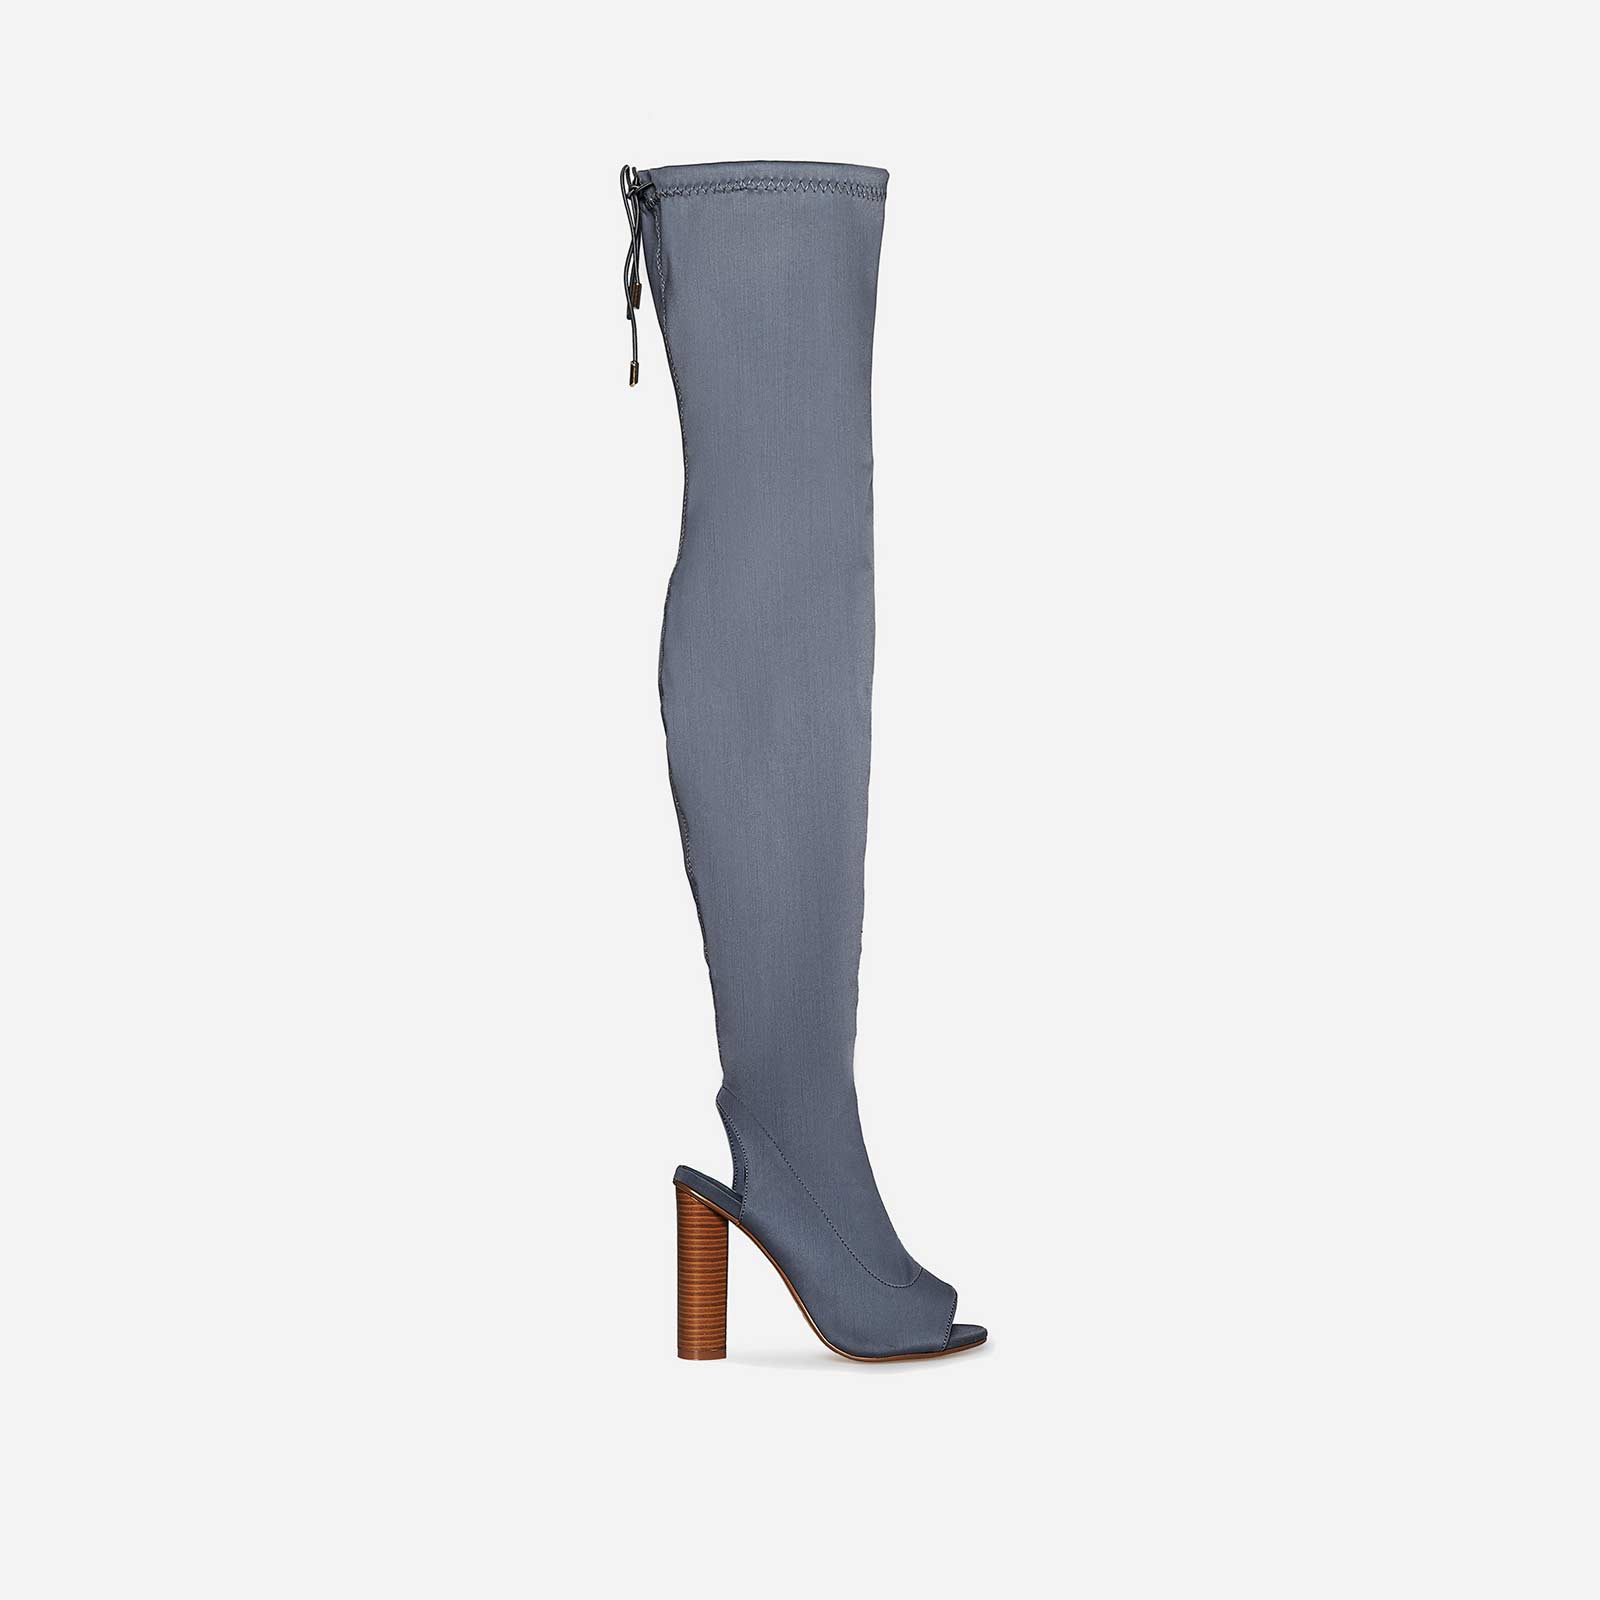 Corinne Cut Out Peep Toe Thigh High Long Boot In Grey Lycra